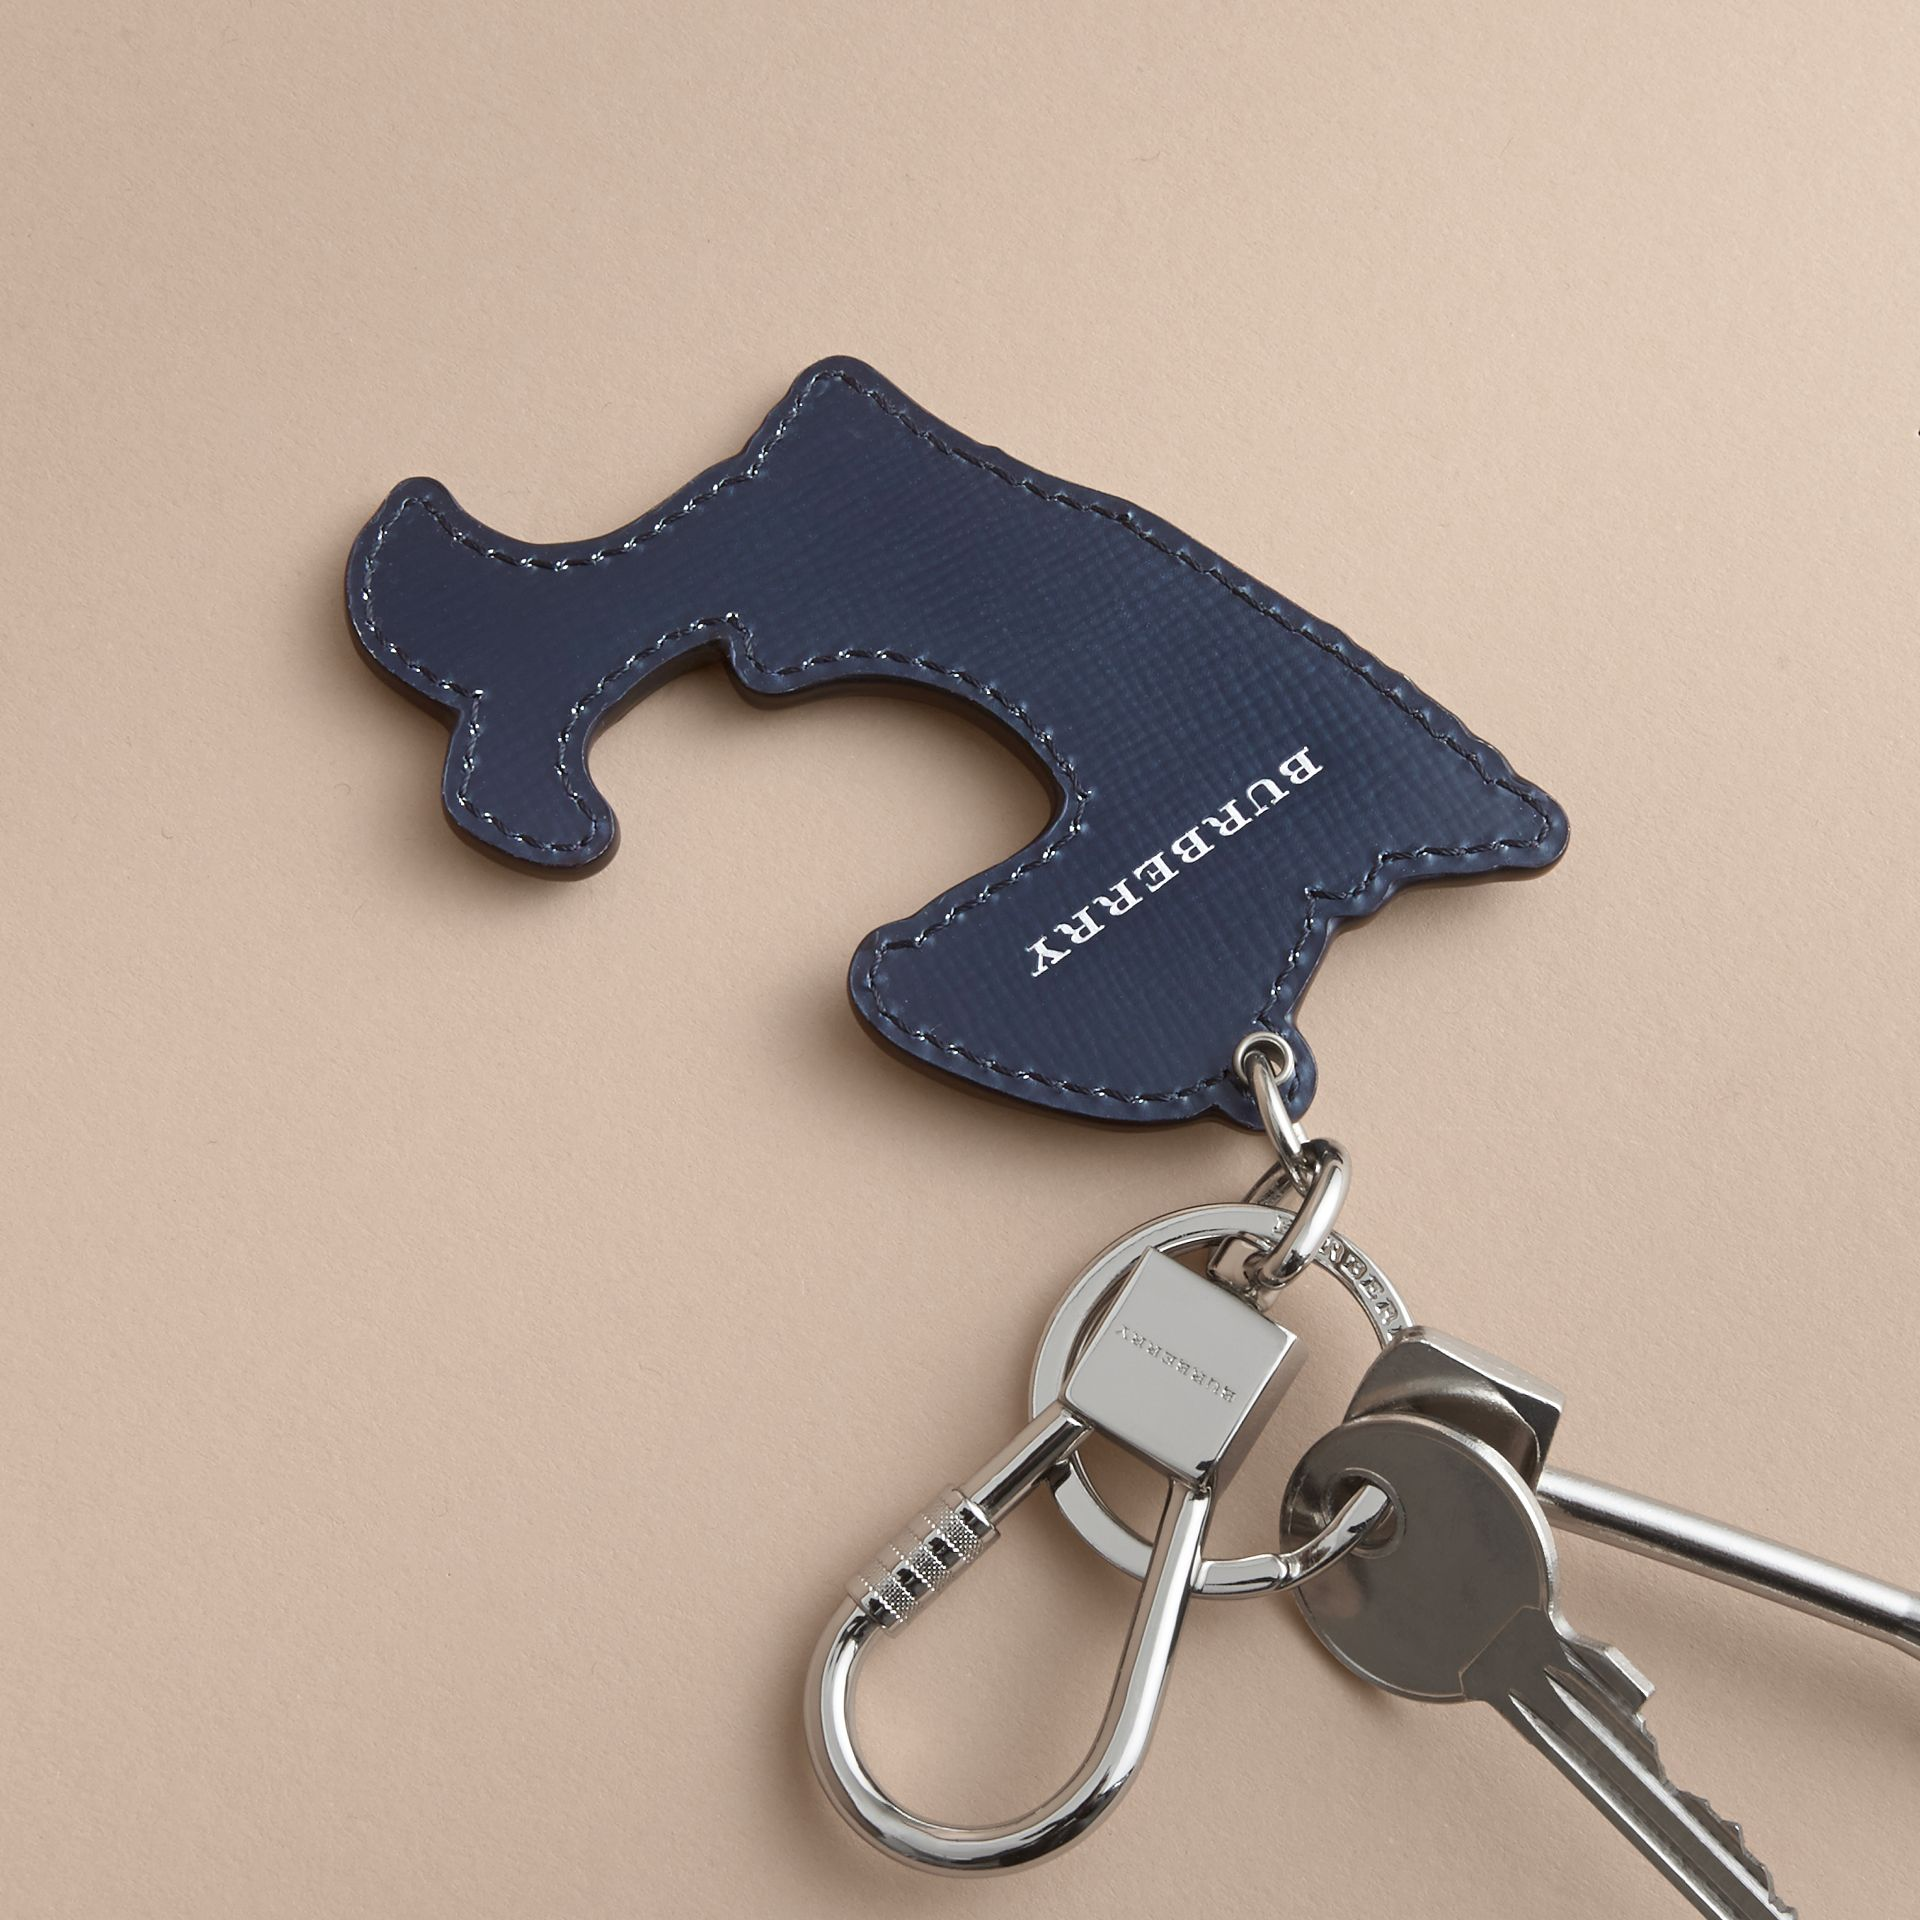 Beasts Leather Key Ring - gallery image 4